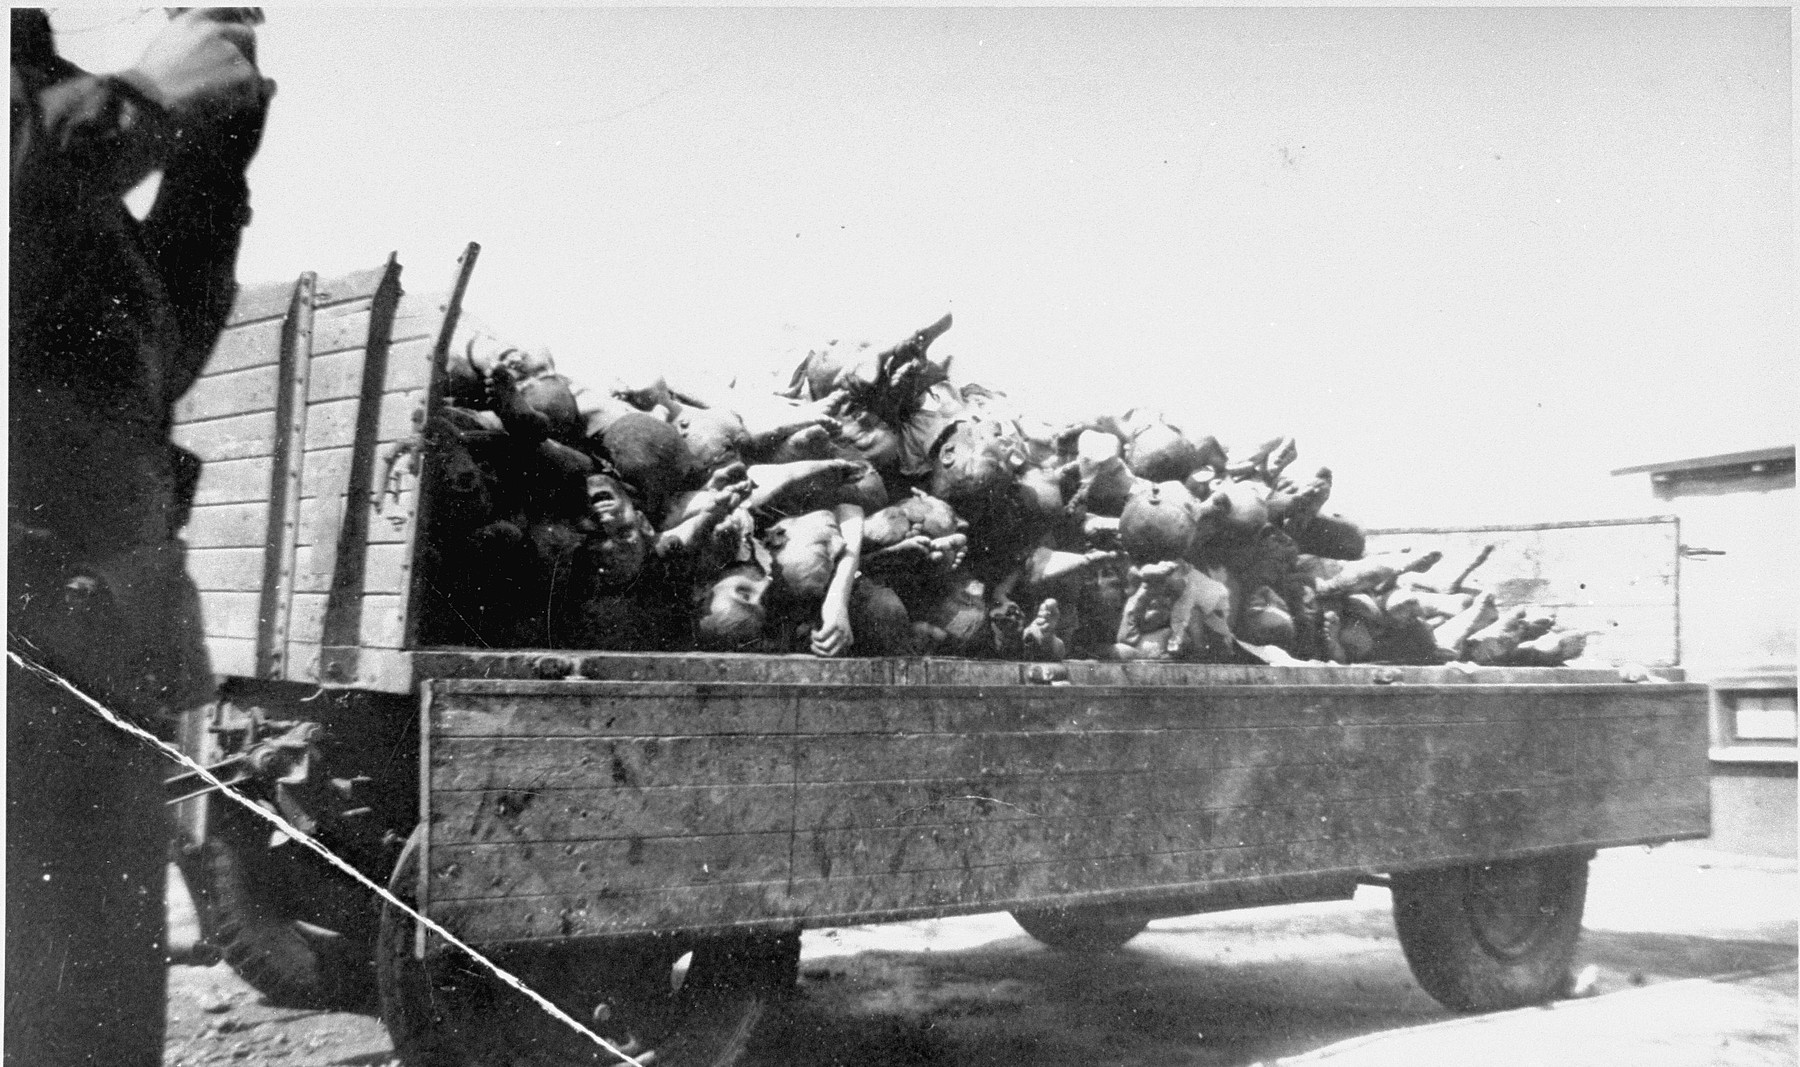 A wagon in Buchenwald loaded with corpses intended for burial.